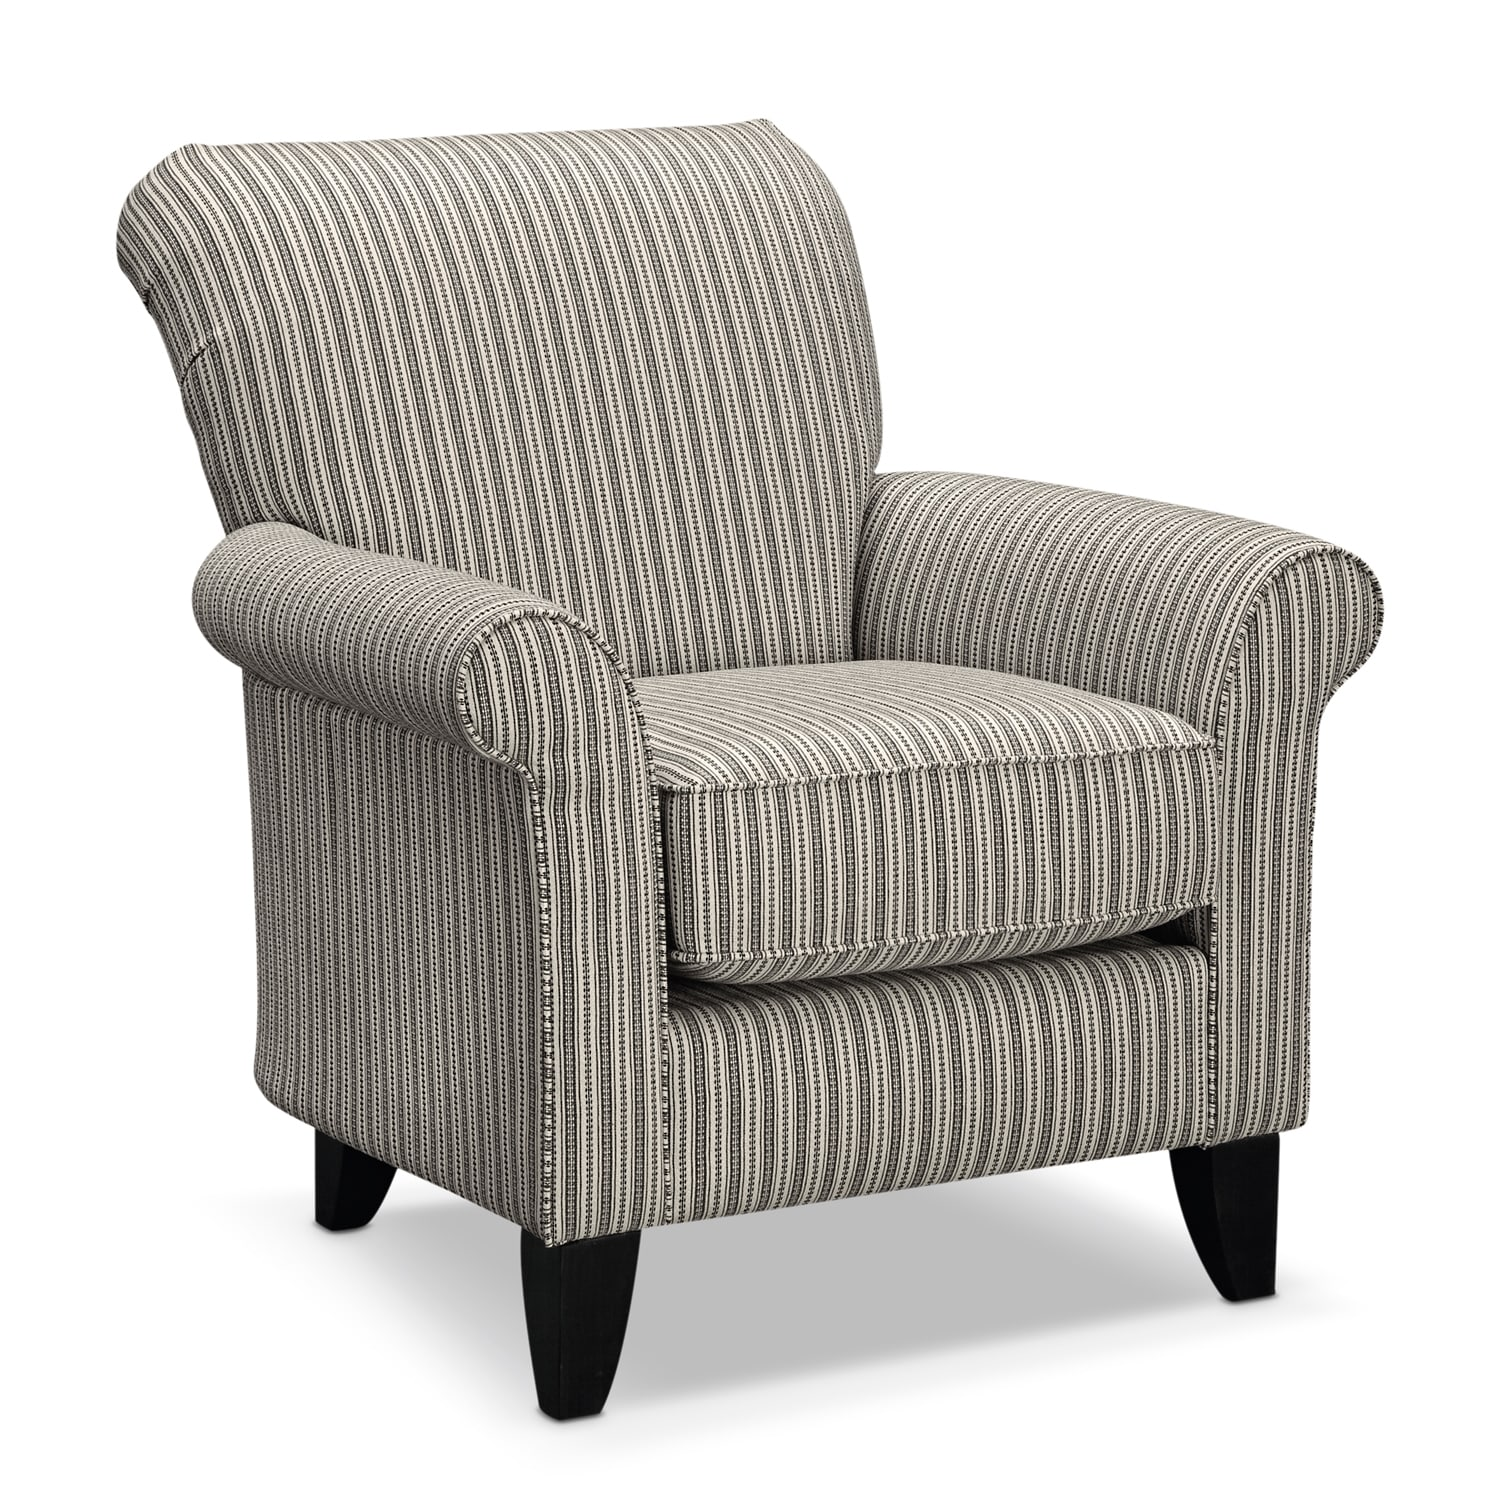 Colette accent chair gray stripe value city furniture for Upholstery living room furniture